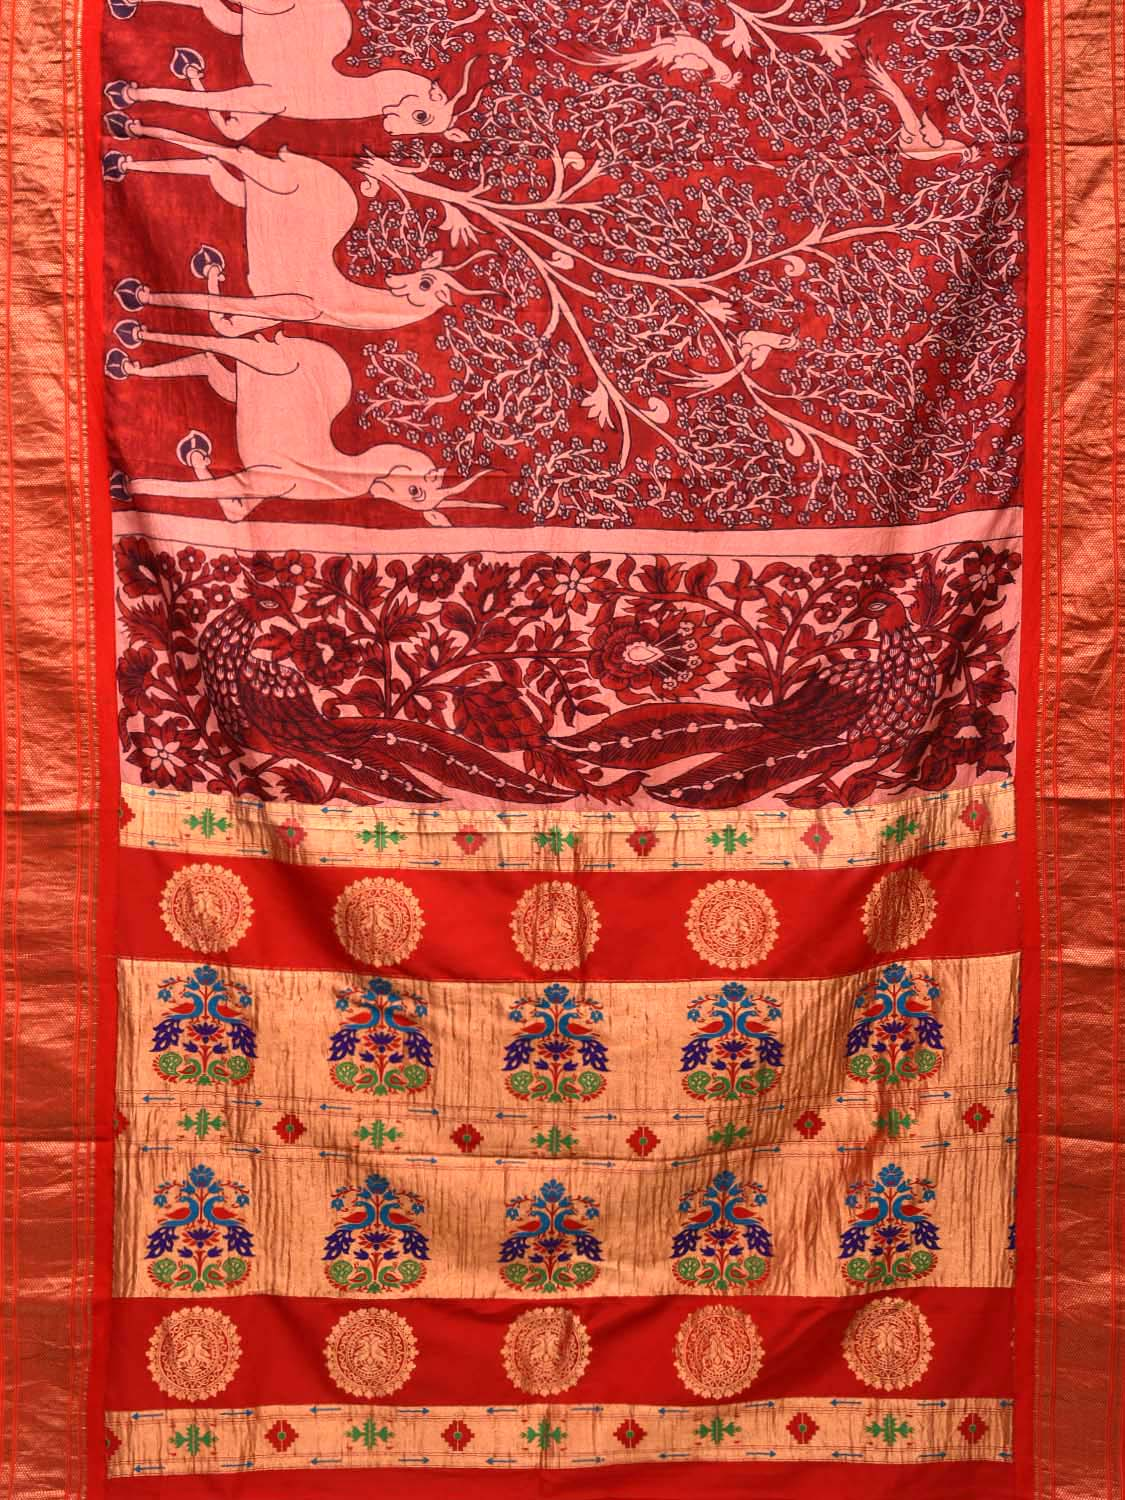 Red Kalamkari Hand Painted Paitani Silk Handloom Saree with Deers Design KL0255